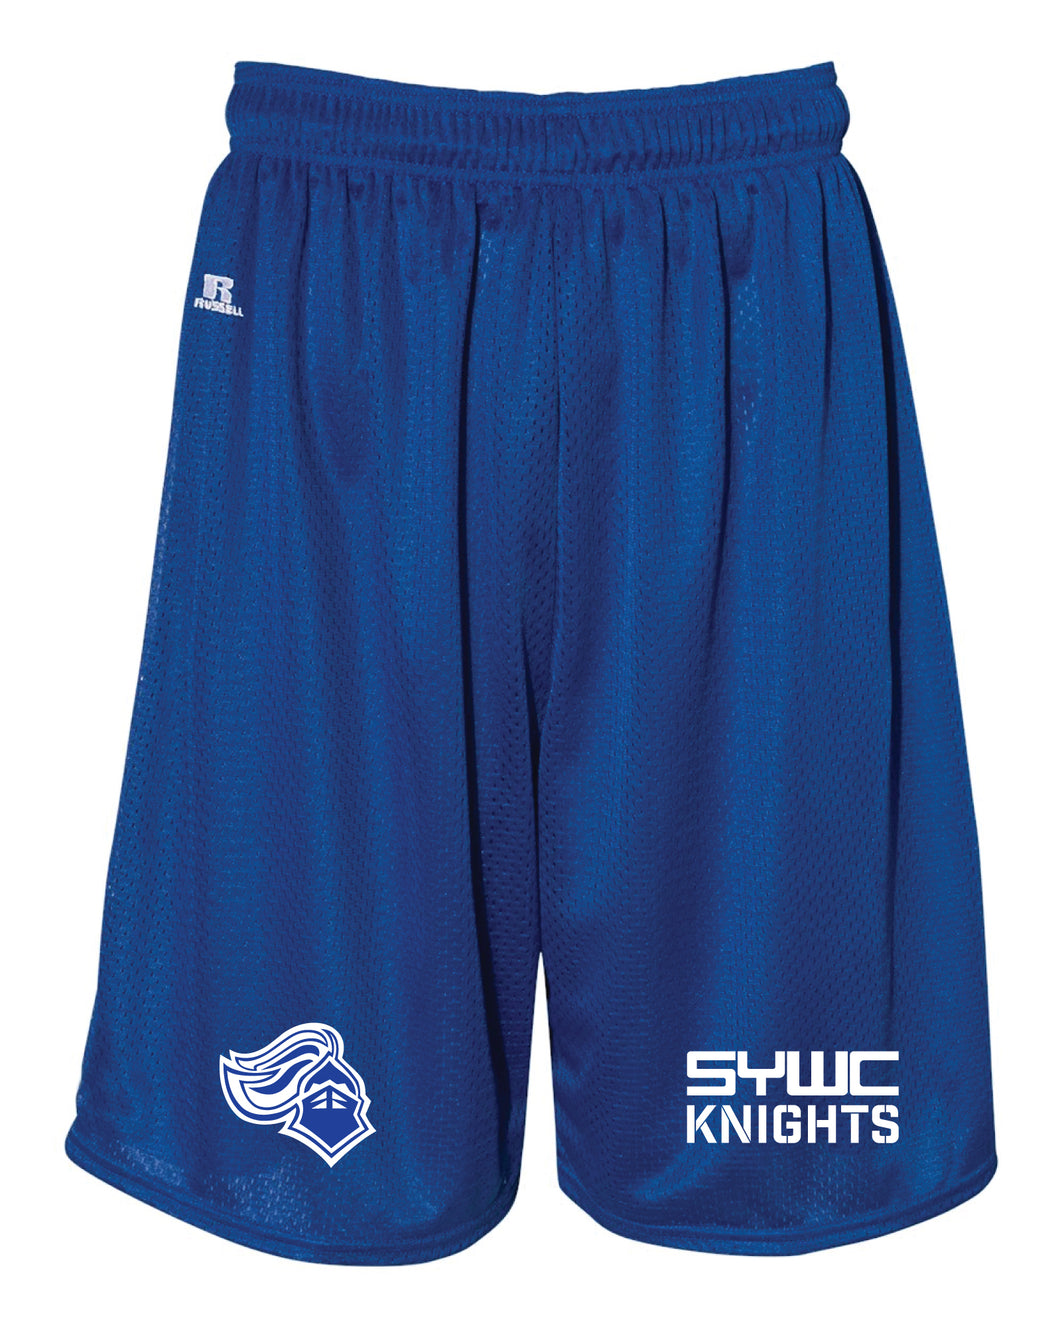 SYWC Russell Athletic  Tech Shorts - Royal - 5KounT2018